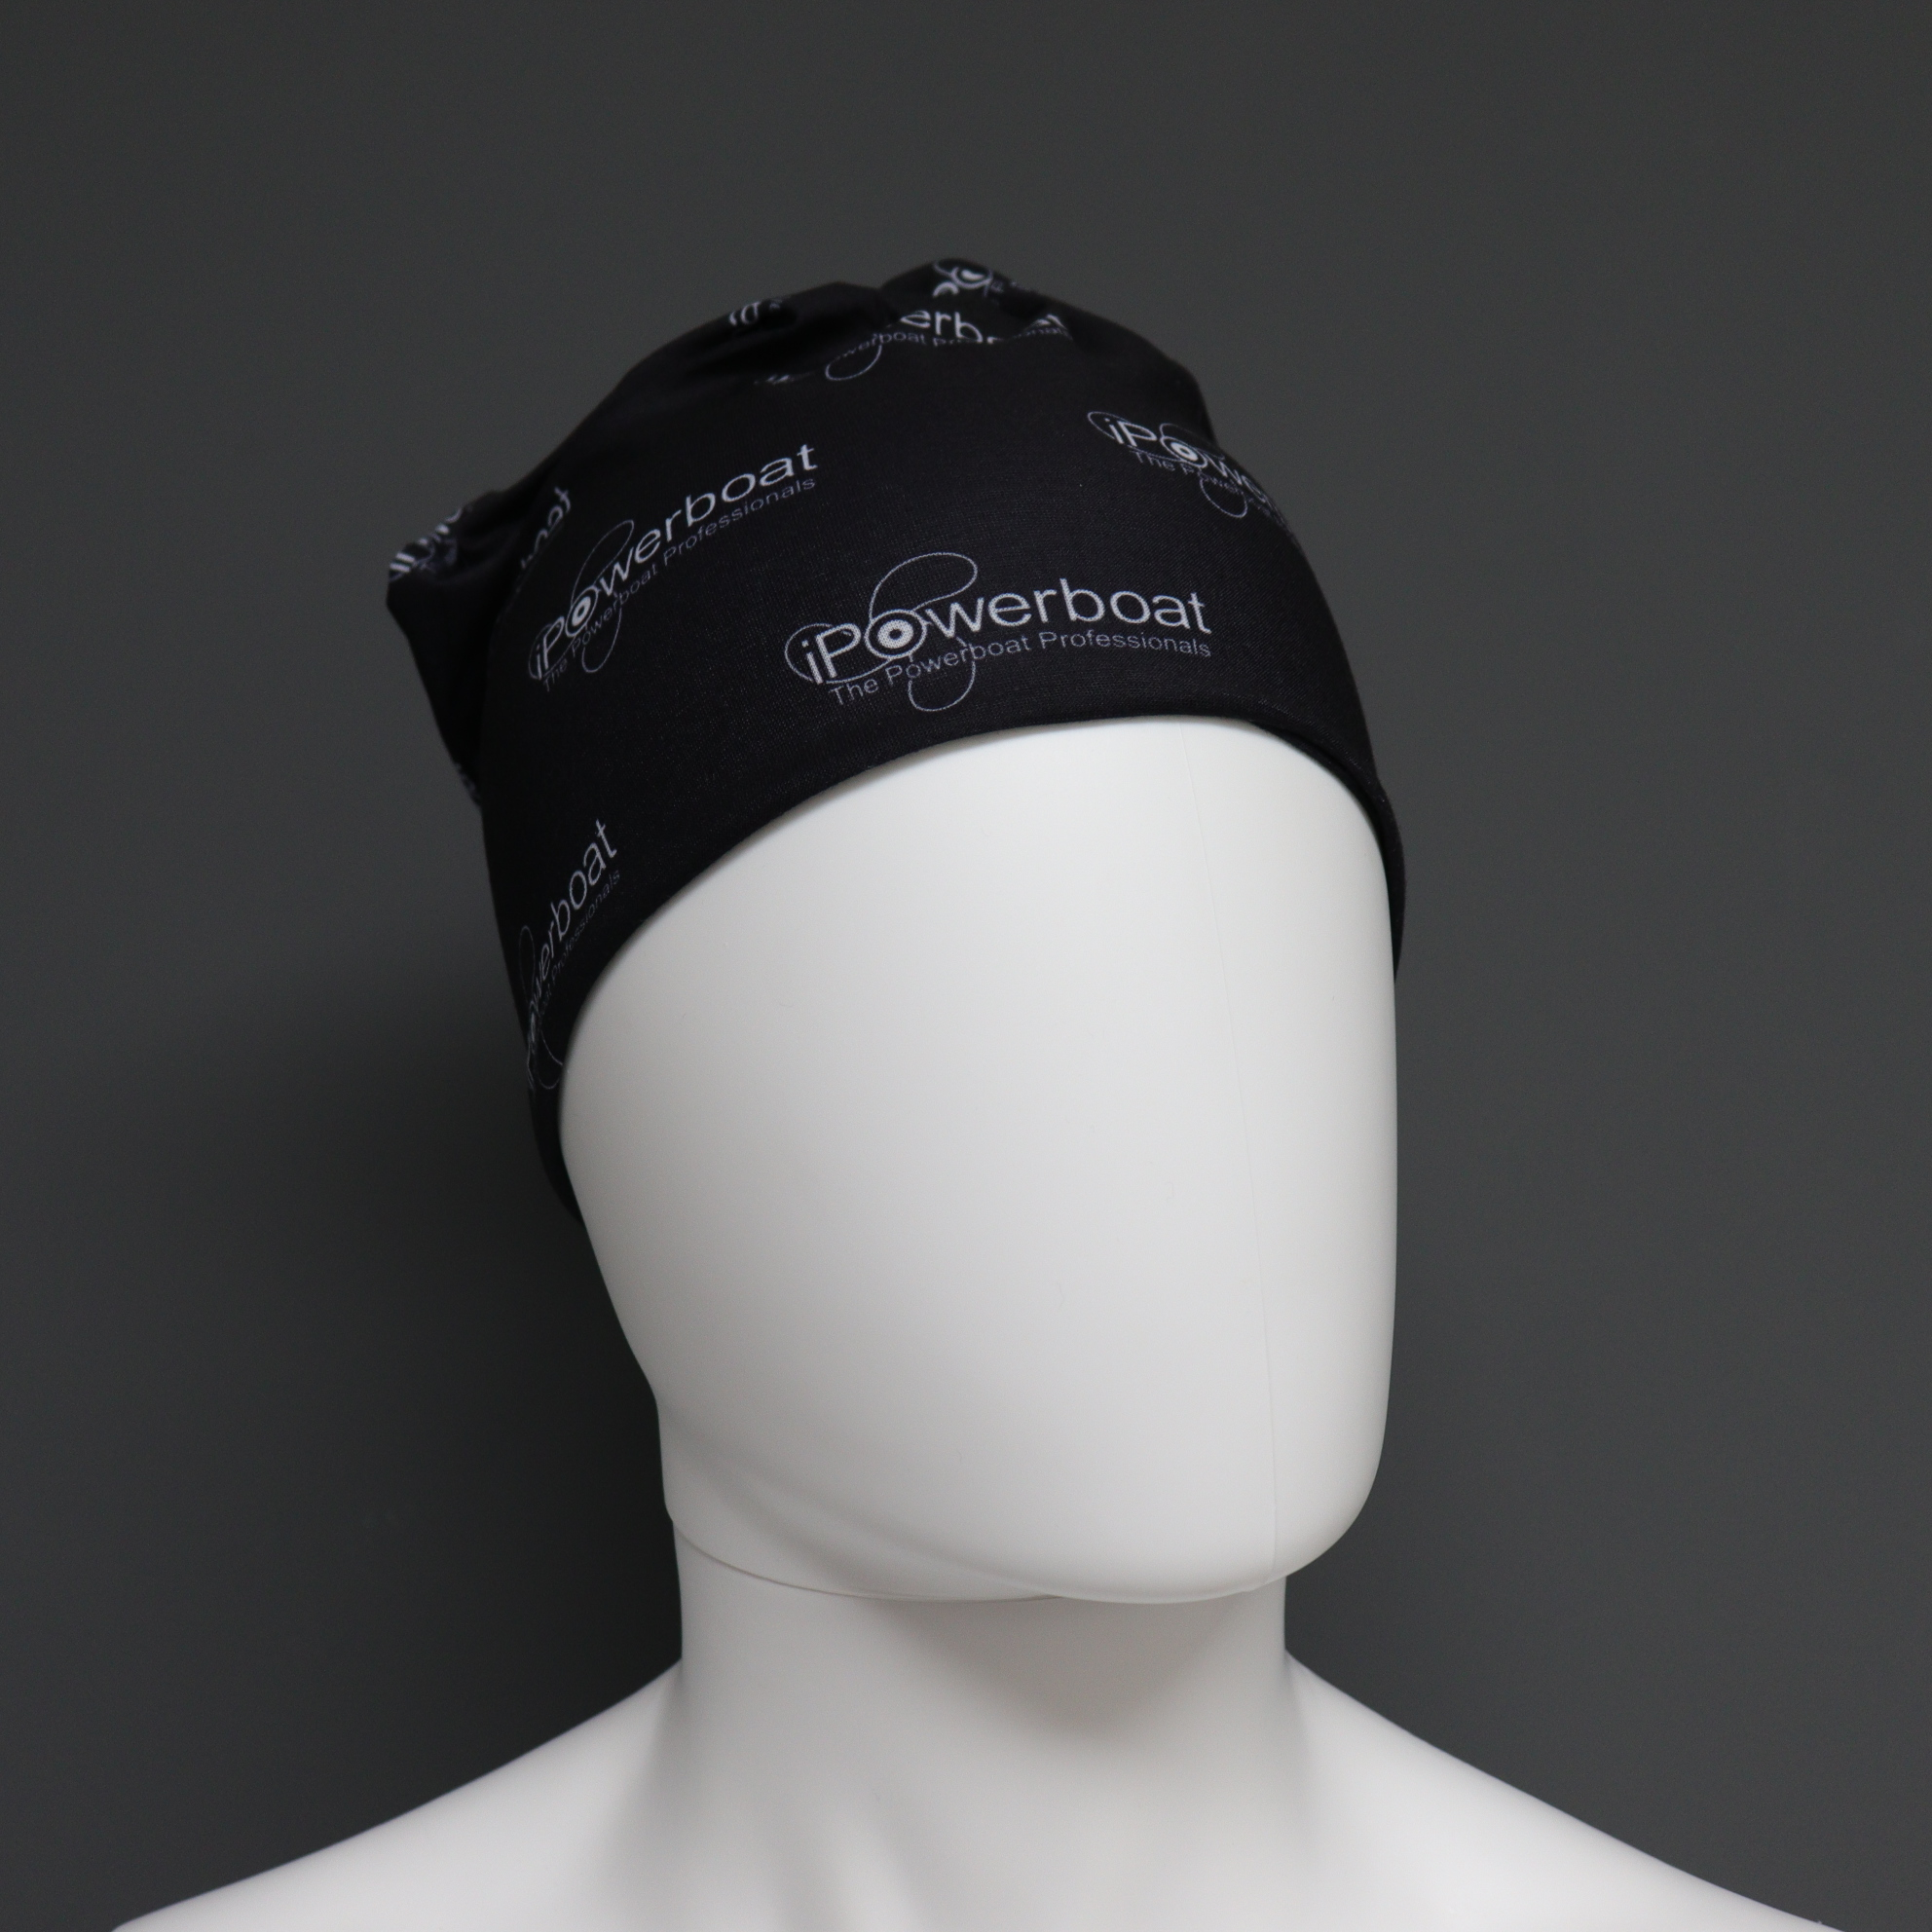 Custom Printed Buff Style Headwear - Powerboat